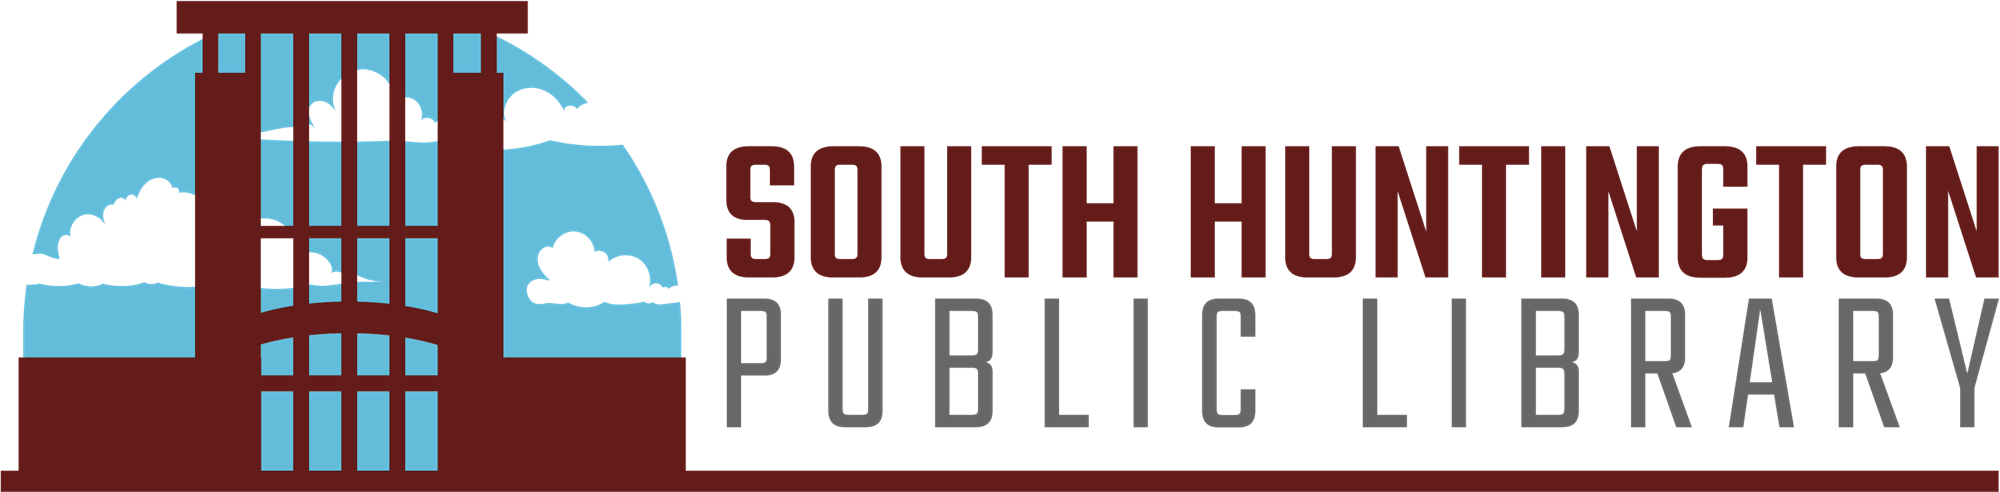 South Huntington Public Library logo